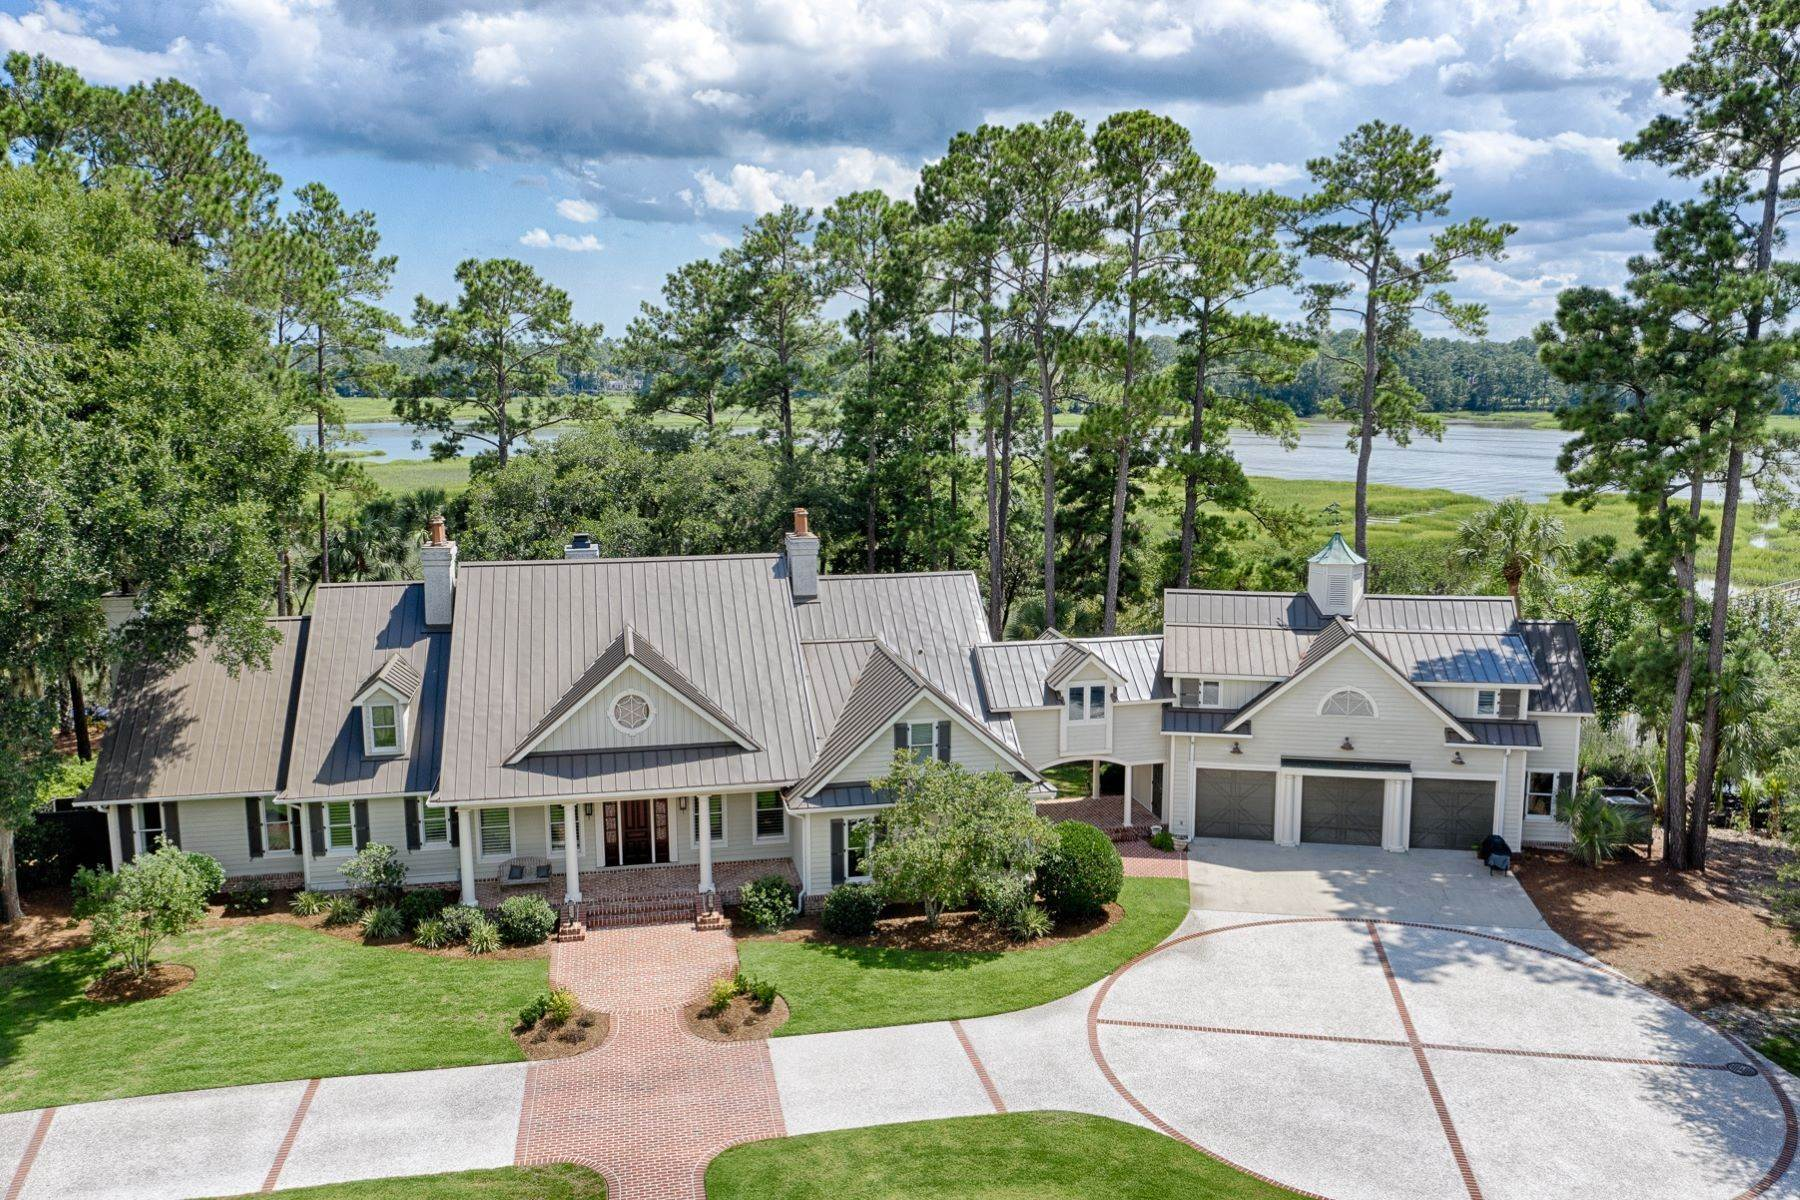 50. Single Family Homes for Sale at 7 Acres in Gascoigne Bluff 155 Gascoigne Bluff Road Bluffton, South Carolina 29910 United States